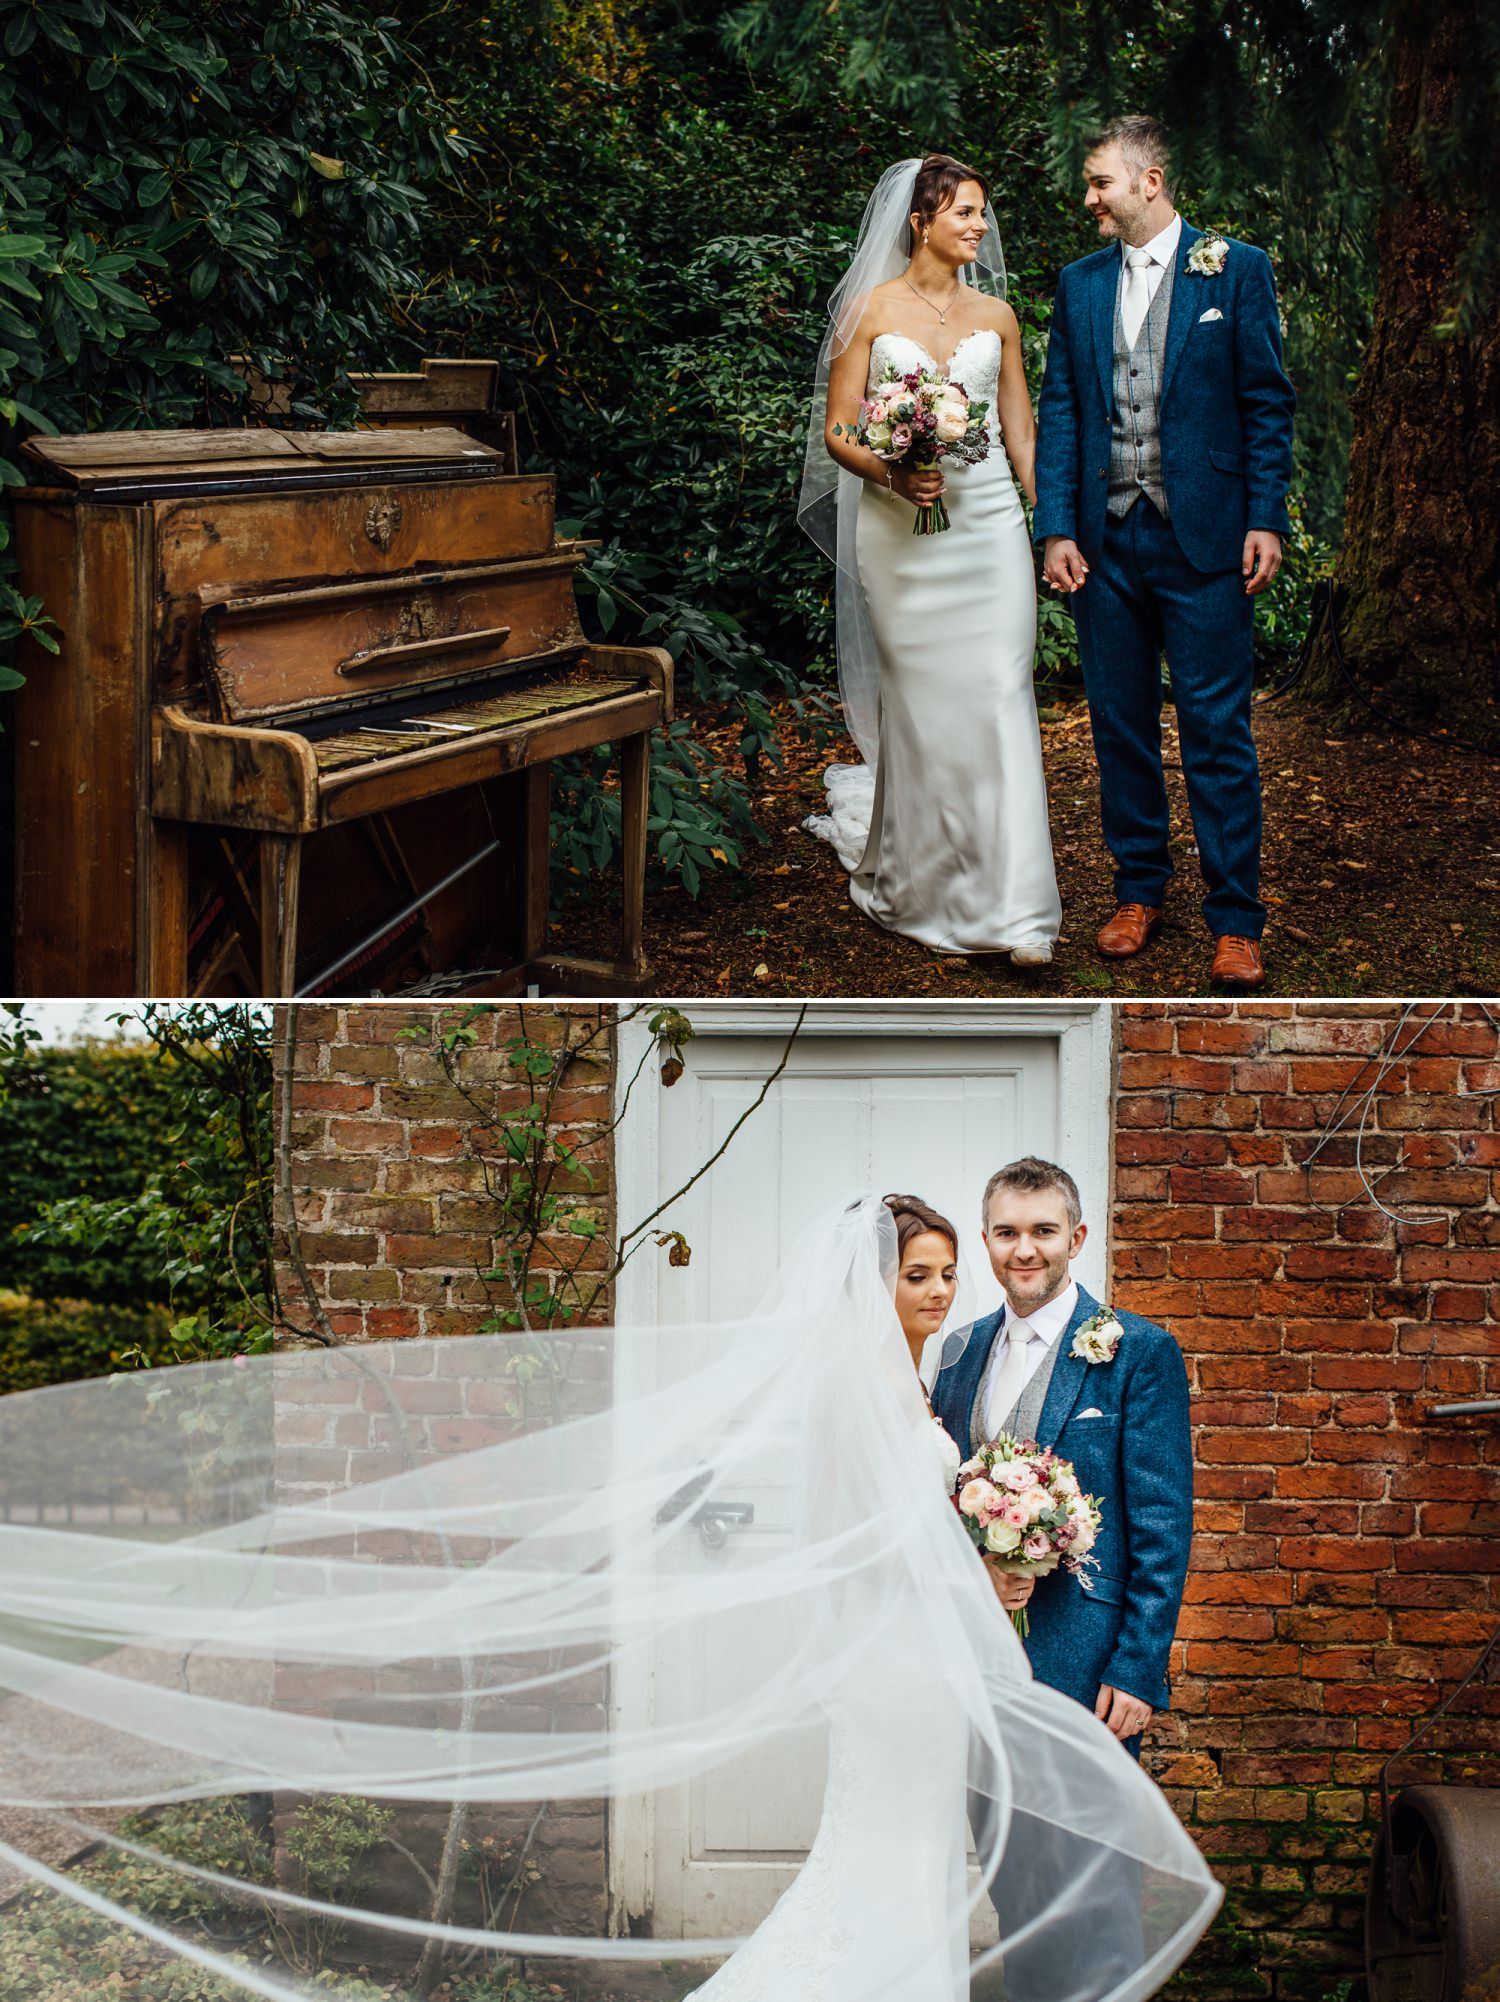 Wedding photography with piano at Iscoyd Park